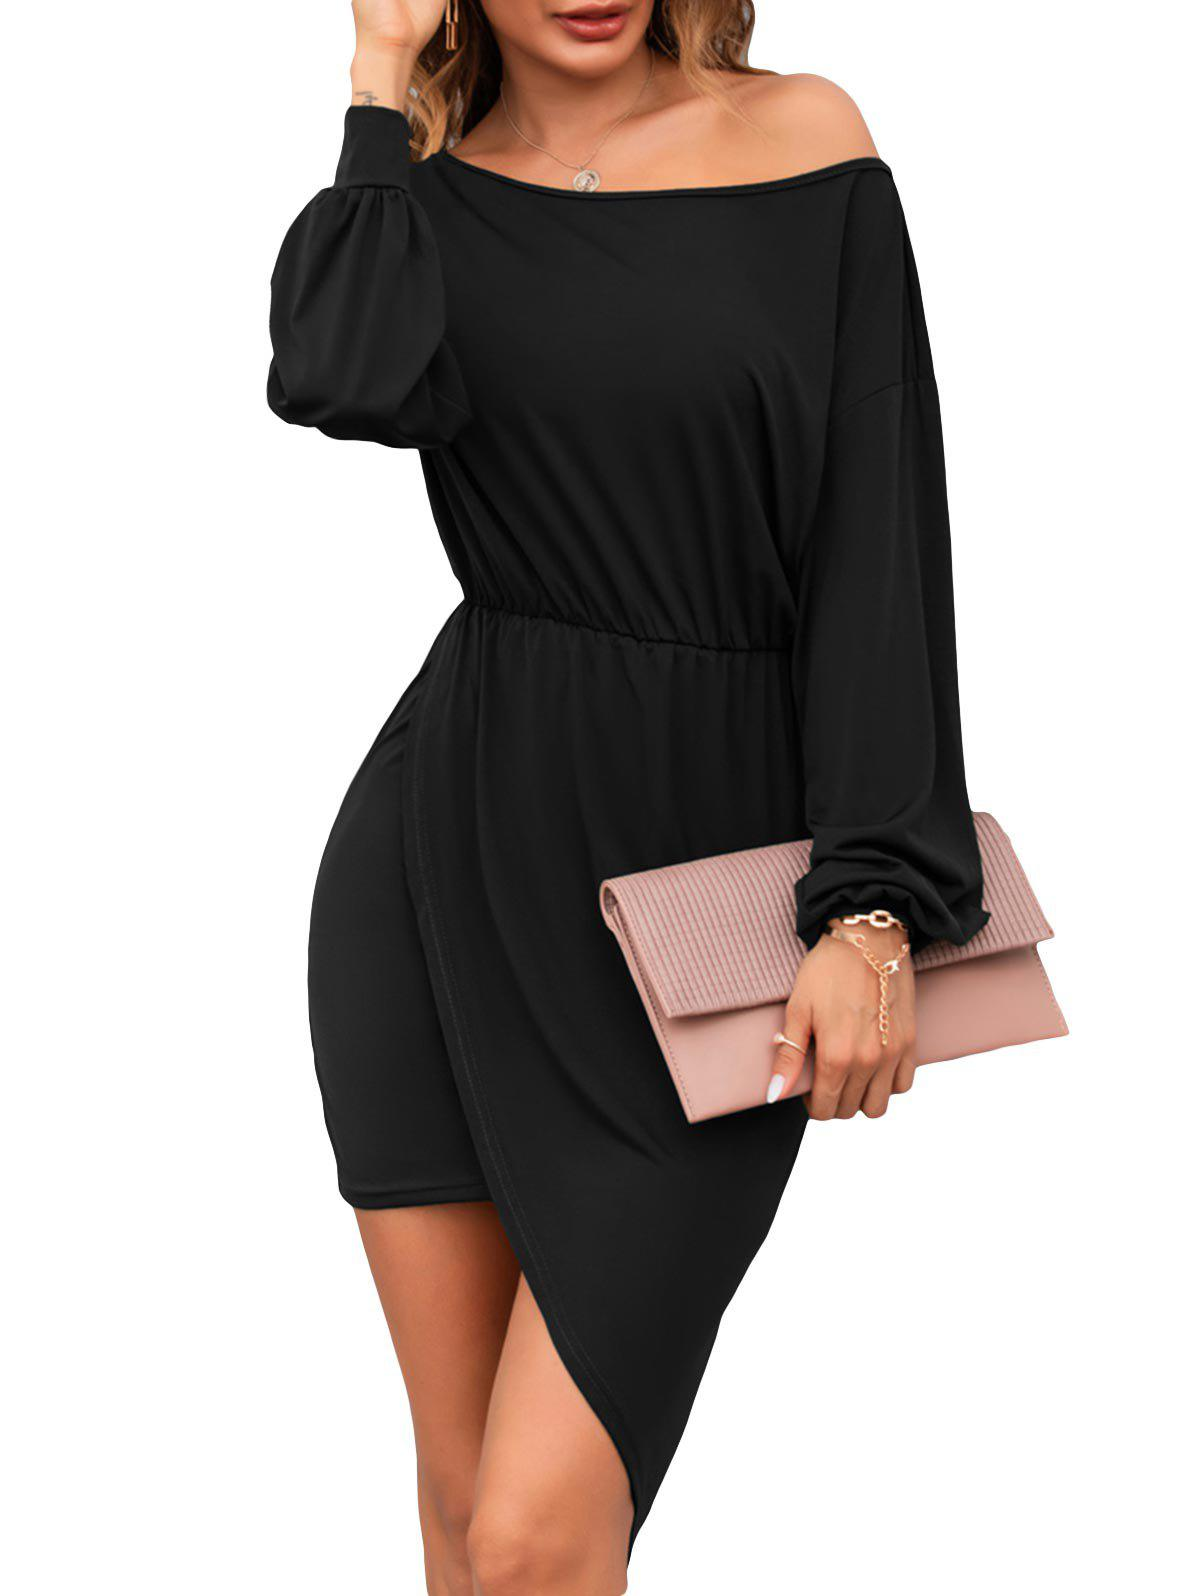 Skew Collar Long Sleeve Asymmetrical Dress - BLACK S